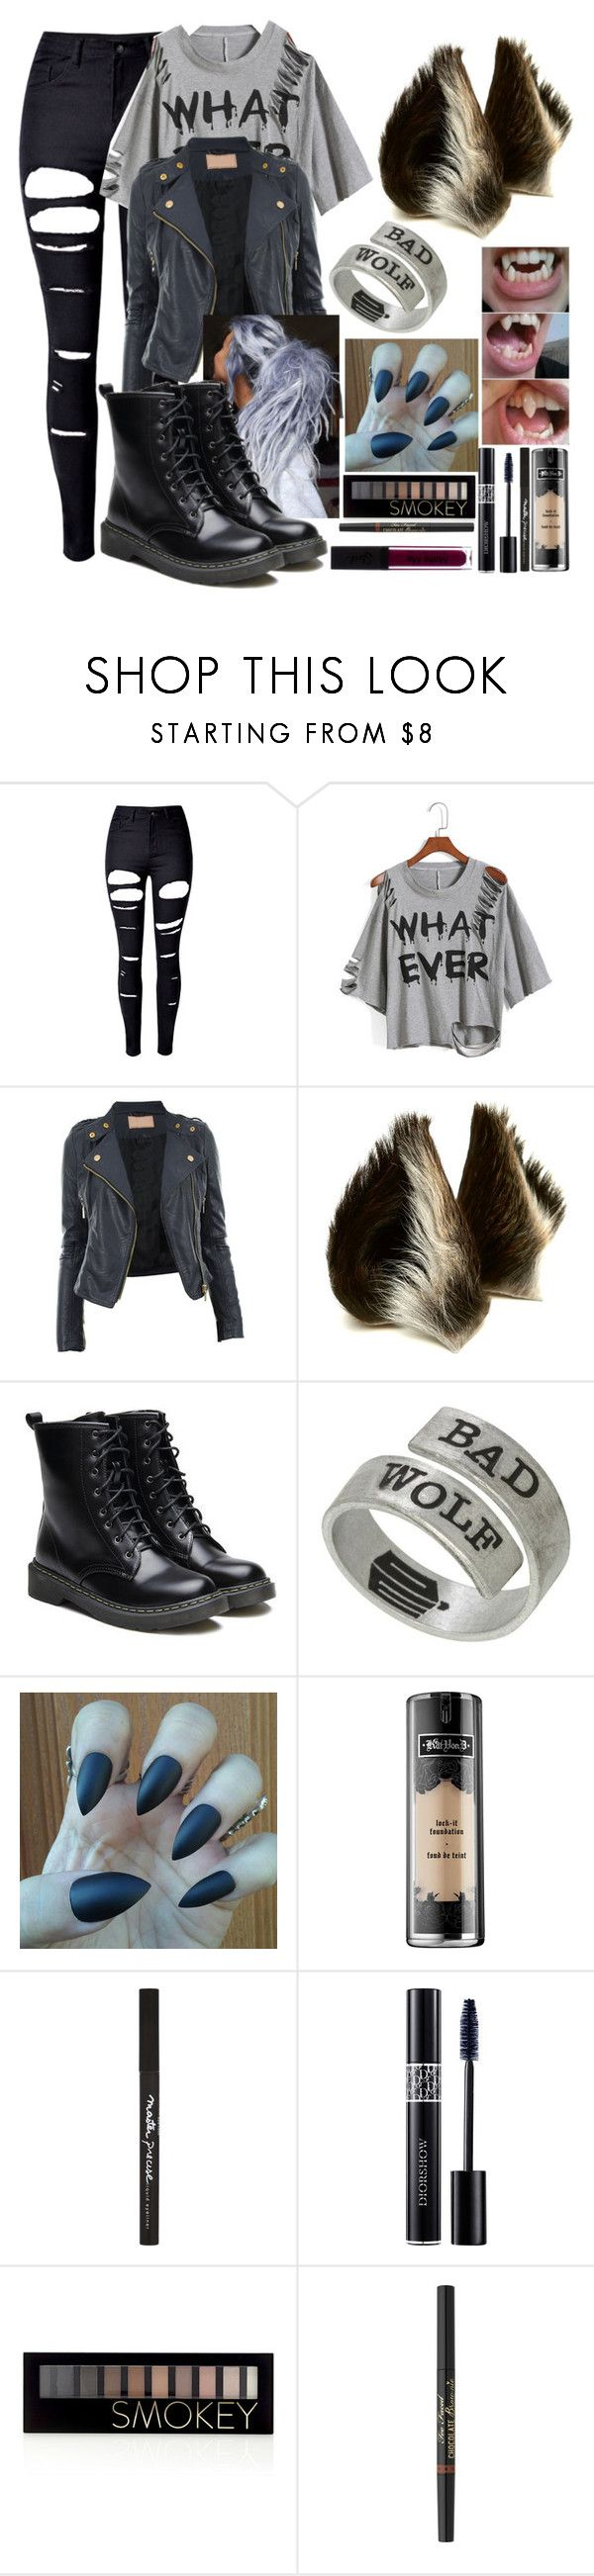 """Werewolf"" by cockles ❤ liked on Polyvore featuring WithChic, CO, Kat Von D, Maybelline, Christian Dior, Forever 21 and Too Faced Cosmetics"